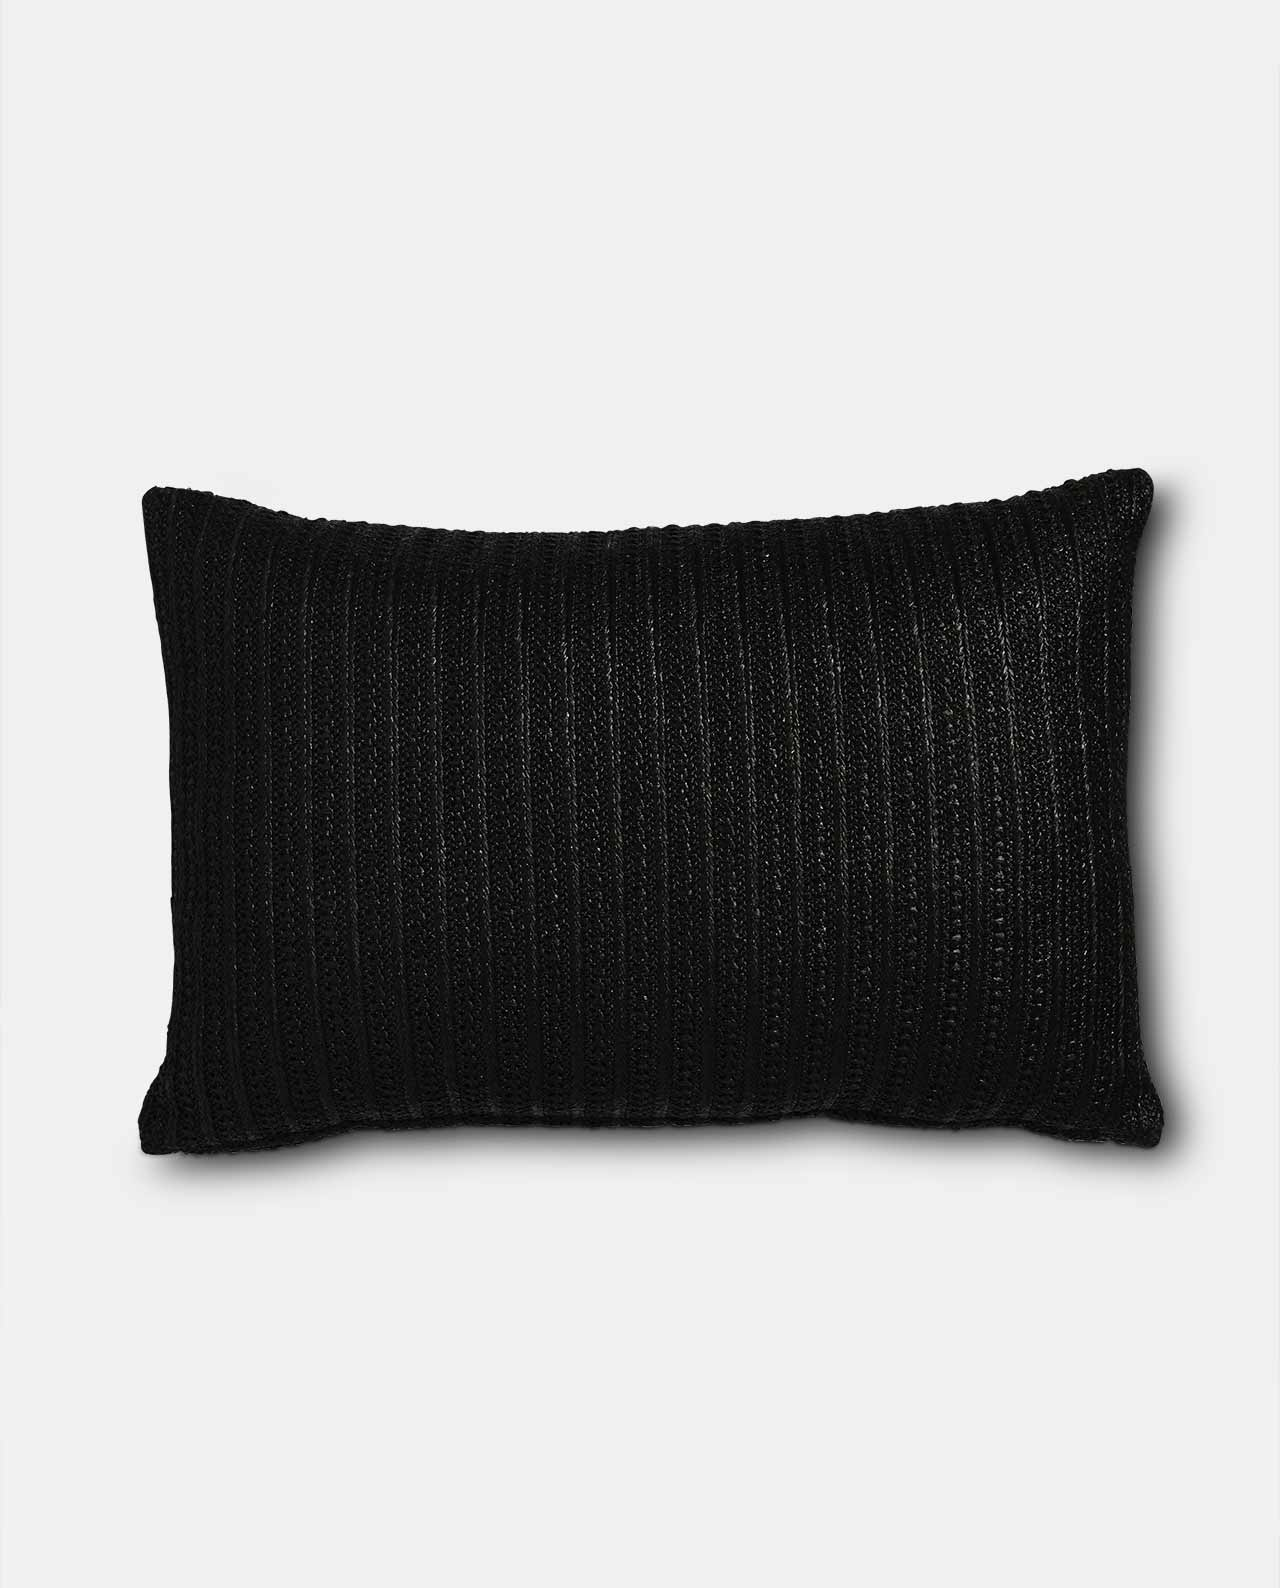 Black Jute Cushion Cover 40x60cm